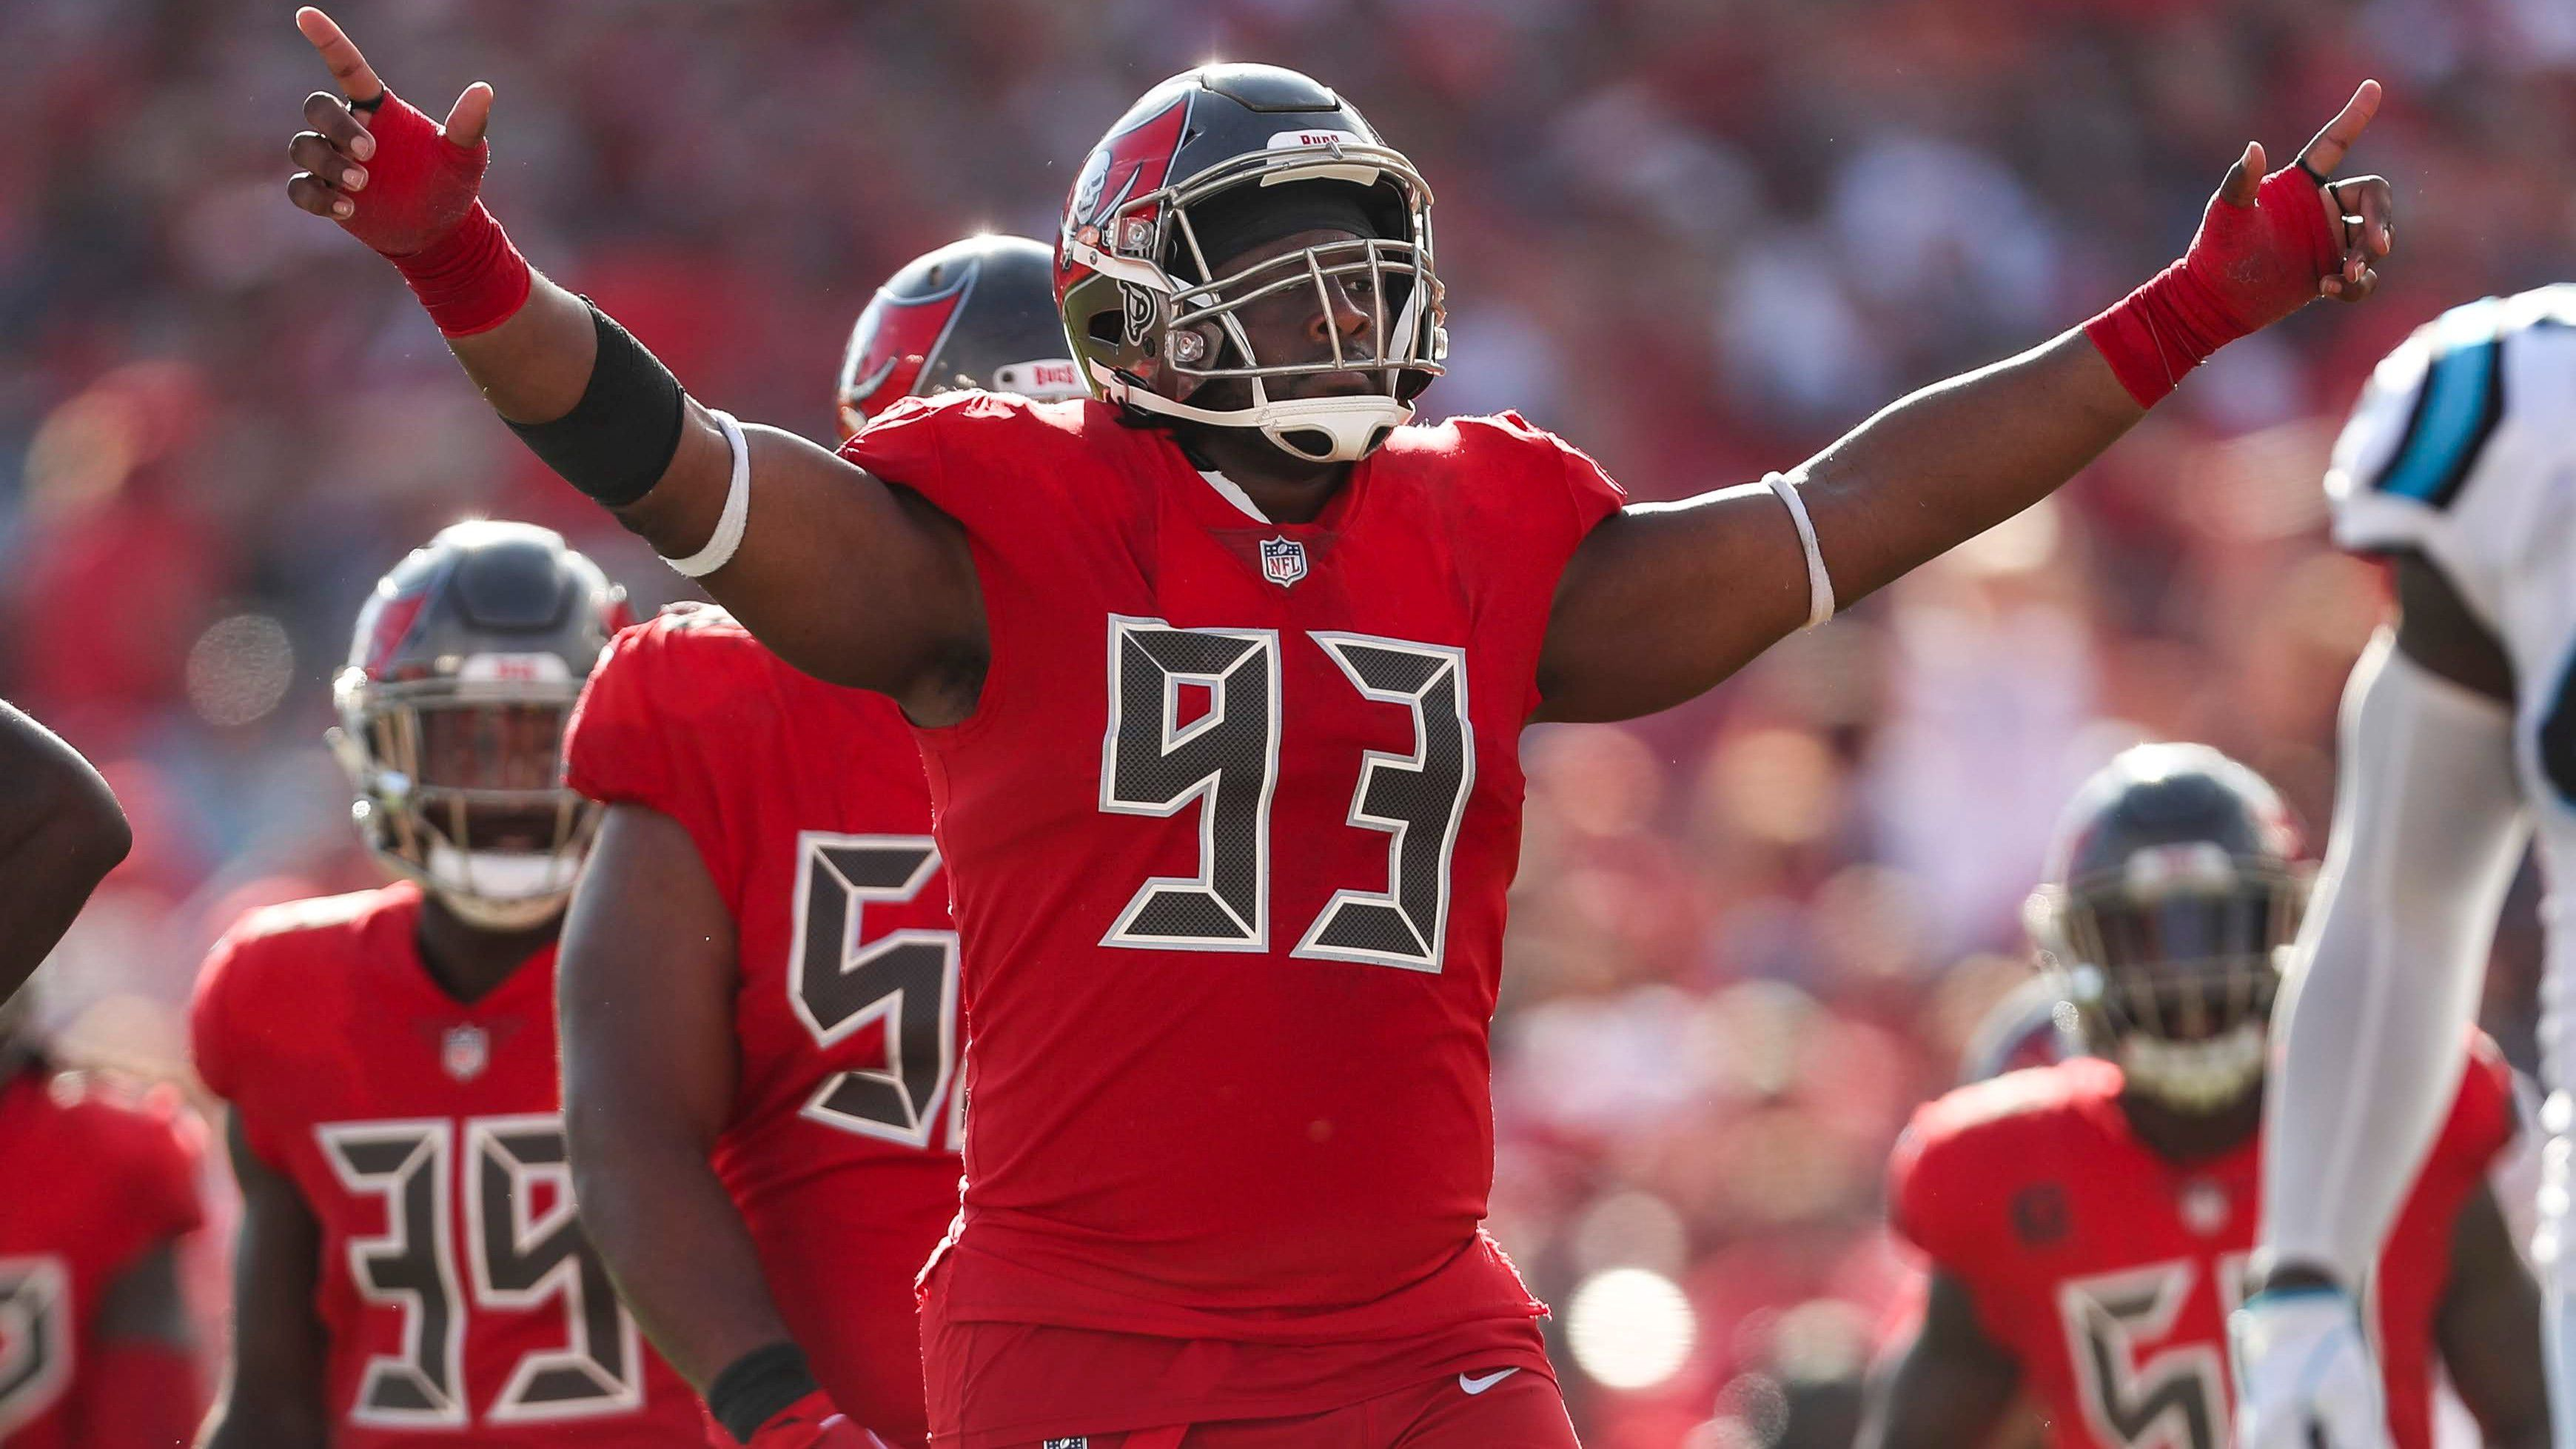 Got a Gerald McCoy jersey? Yeah, you might want to log on to eBay